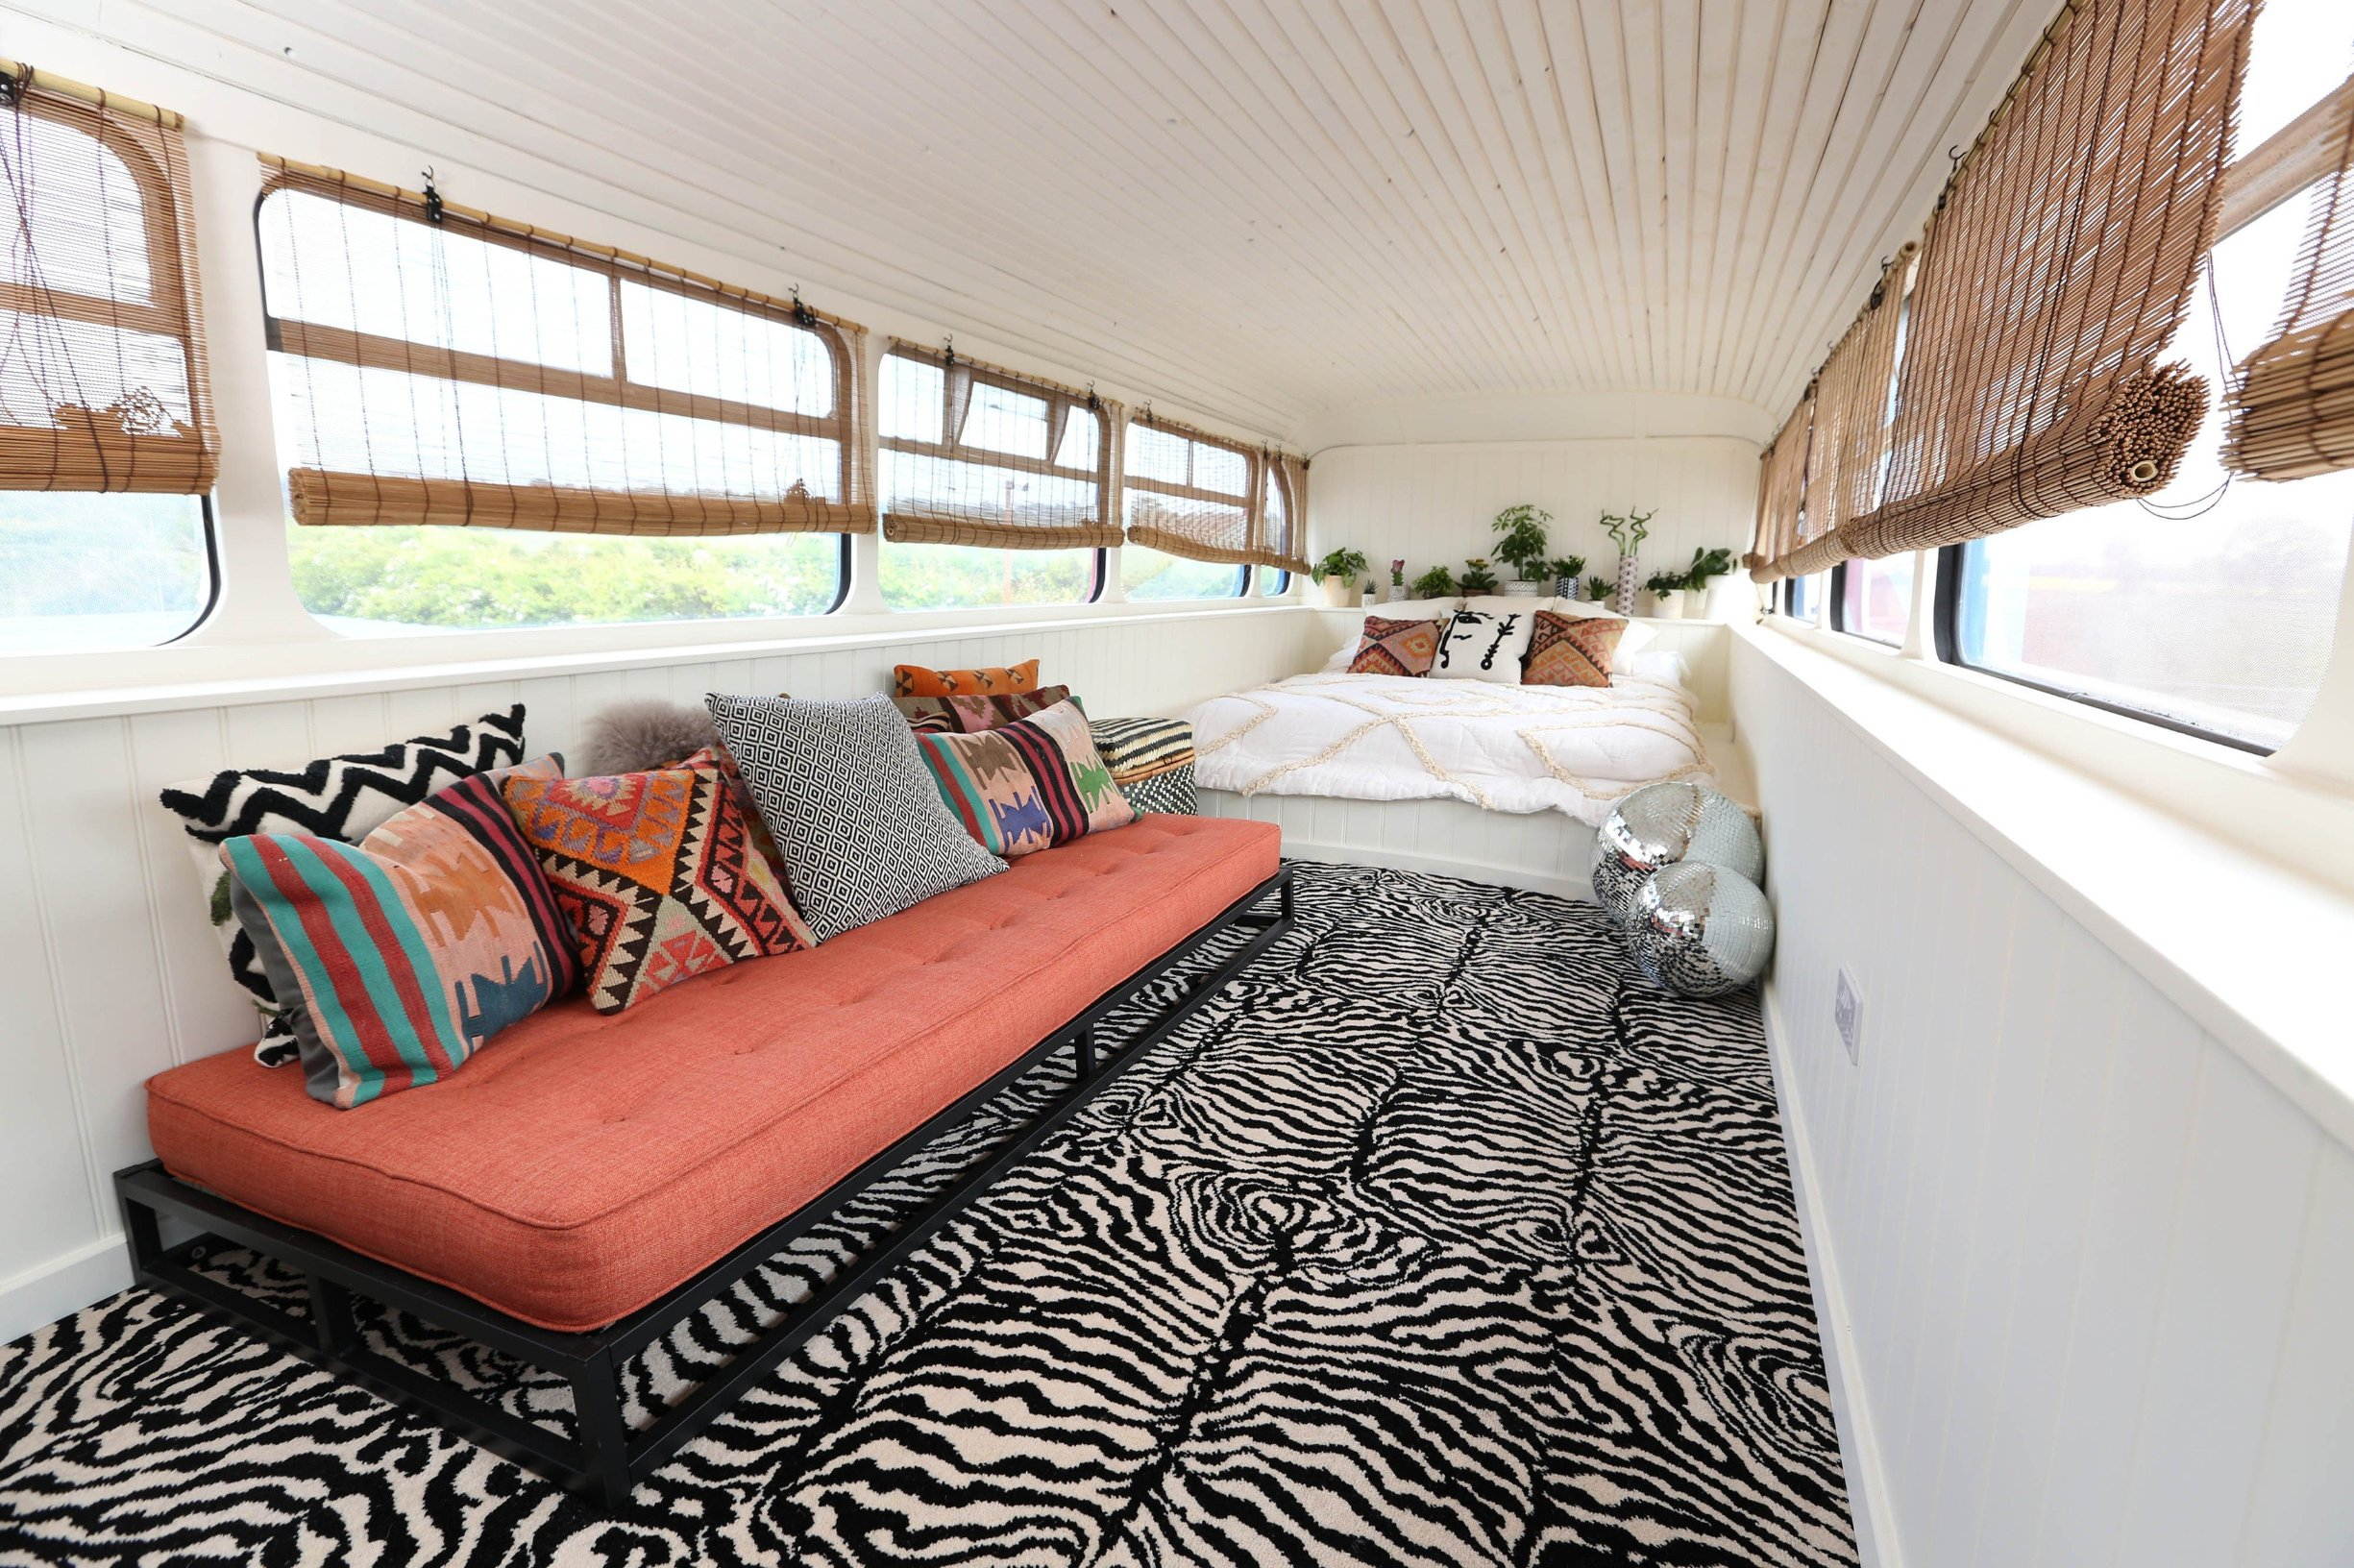 Fancy spicing up your night? Now you can with a stay in the iconic bus from the Spice Girls movie. Host Suzanne Godley teamed up with Airbnb to create this unique and nostalgic stay in time for the Spice Girls reunion tour. The accommodation is made from the original Union Jack bus from the Spice Girls' 1997 movie Spice World, which was then converted into a luxury apartment. The Spice Bus will be situated in the heart of Wembley Park, London, where guests will be able to stay overnight from June 14. The recently renovated living area features pink Union Jack cinema chairs below a Girl Power neon light installation and is fully stocked with vintage 90s magazines and CDs to help recreate the 90s era. With bold interiors, potted plants create a fresh homely feel downstairs while bright colourful scatter cushions surround the central seating area, providing a comfy place for guests to relax and spend time with each other. Upstairs theres a dressing and the adjoining bedroom, which is fitted with a striking animal-print carpet, provides comfy bedding for three guests who get to call the Spice Bus home for the night. Suzanne, who is a Spice Girls superfan, said: When my boss mentioned that he was considering buying the Spice Bus I was desperate to be a part of its renovation. Weve worked hard over the past few months to turn the bus into a home, in keeping with its legacy, and Im so excited to open it up to the public with the support of Airbnb. Being part of this project has been like a dream come true and I cant wait to meet other Spice Girls fans through this experience.. 15 May 2019, Image: 433505137, License: Rights-managed, Restrictions: World Rights, Model Release: no, Credit line: Profimedia, Mega Agency